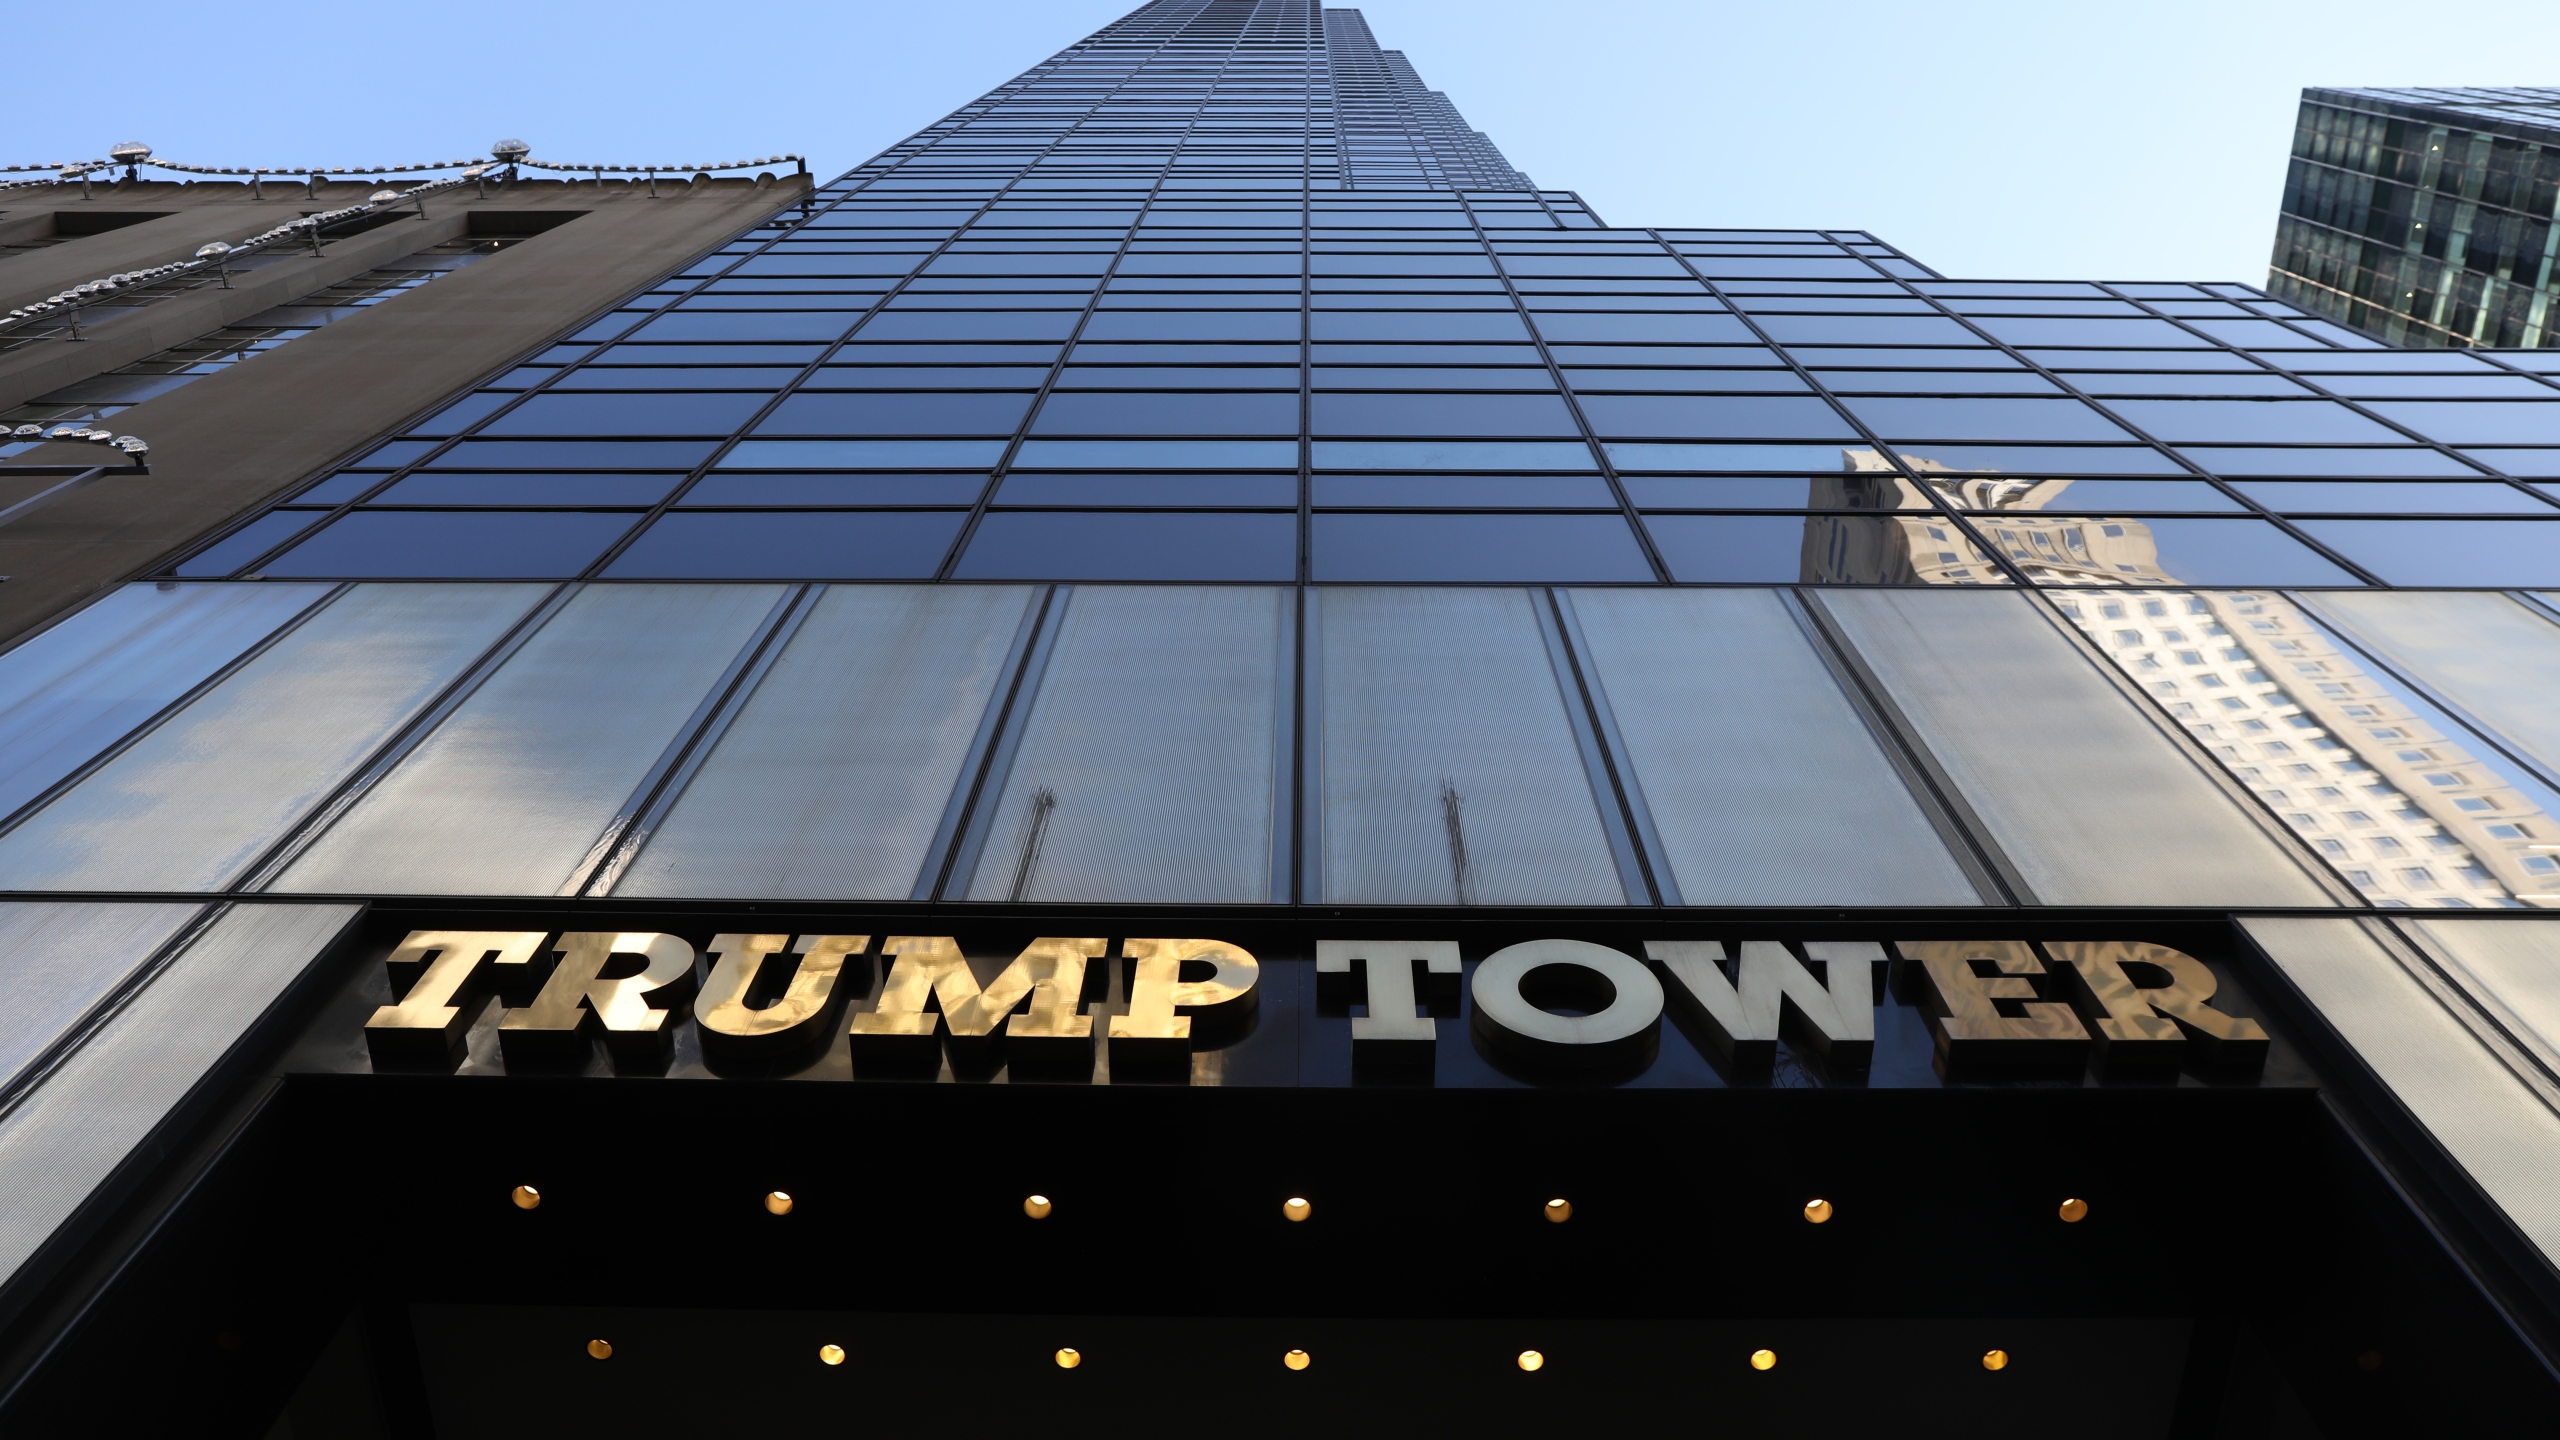 Trump Tower stands in midtown Manhattan on Dec. 10, 2018 in New York City. (Credit: Spencer Platt/Getty Images)